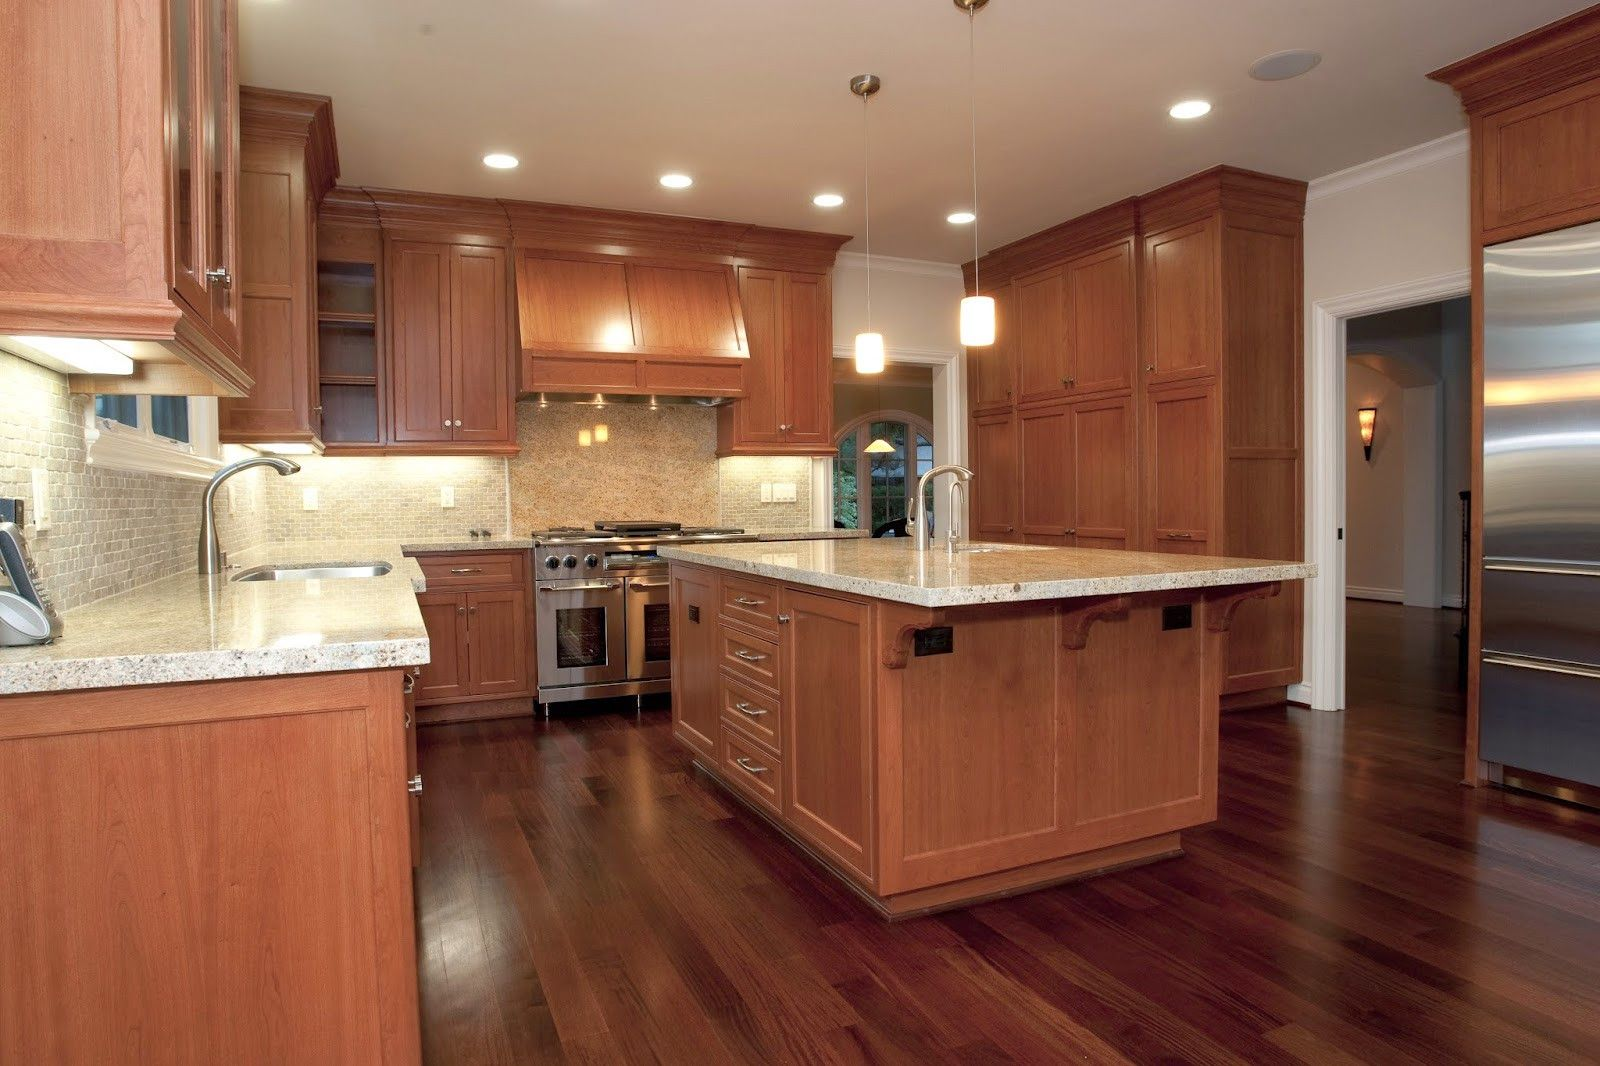 50 What Color Hardwood Floor With Cherry Cabinets Kitchen Nook Lighting Ideas Check More At Light Wood Kitchens Wood Floors Wide Plank White Modern Kitchen